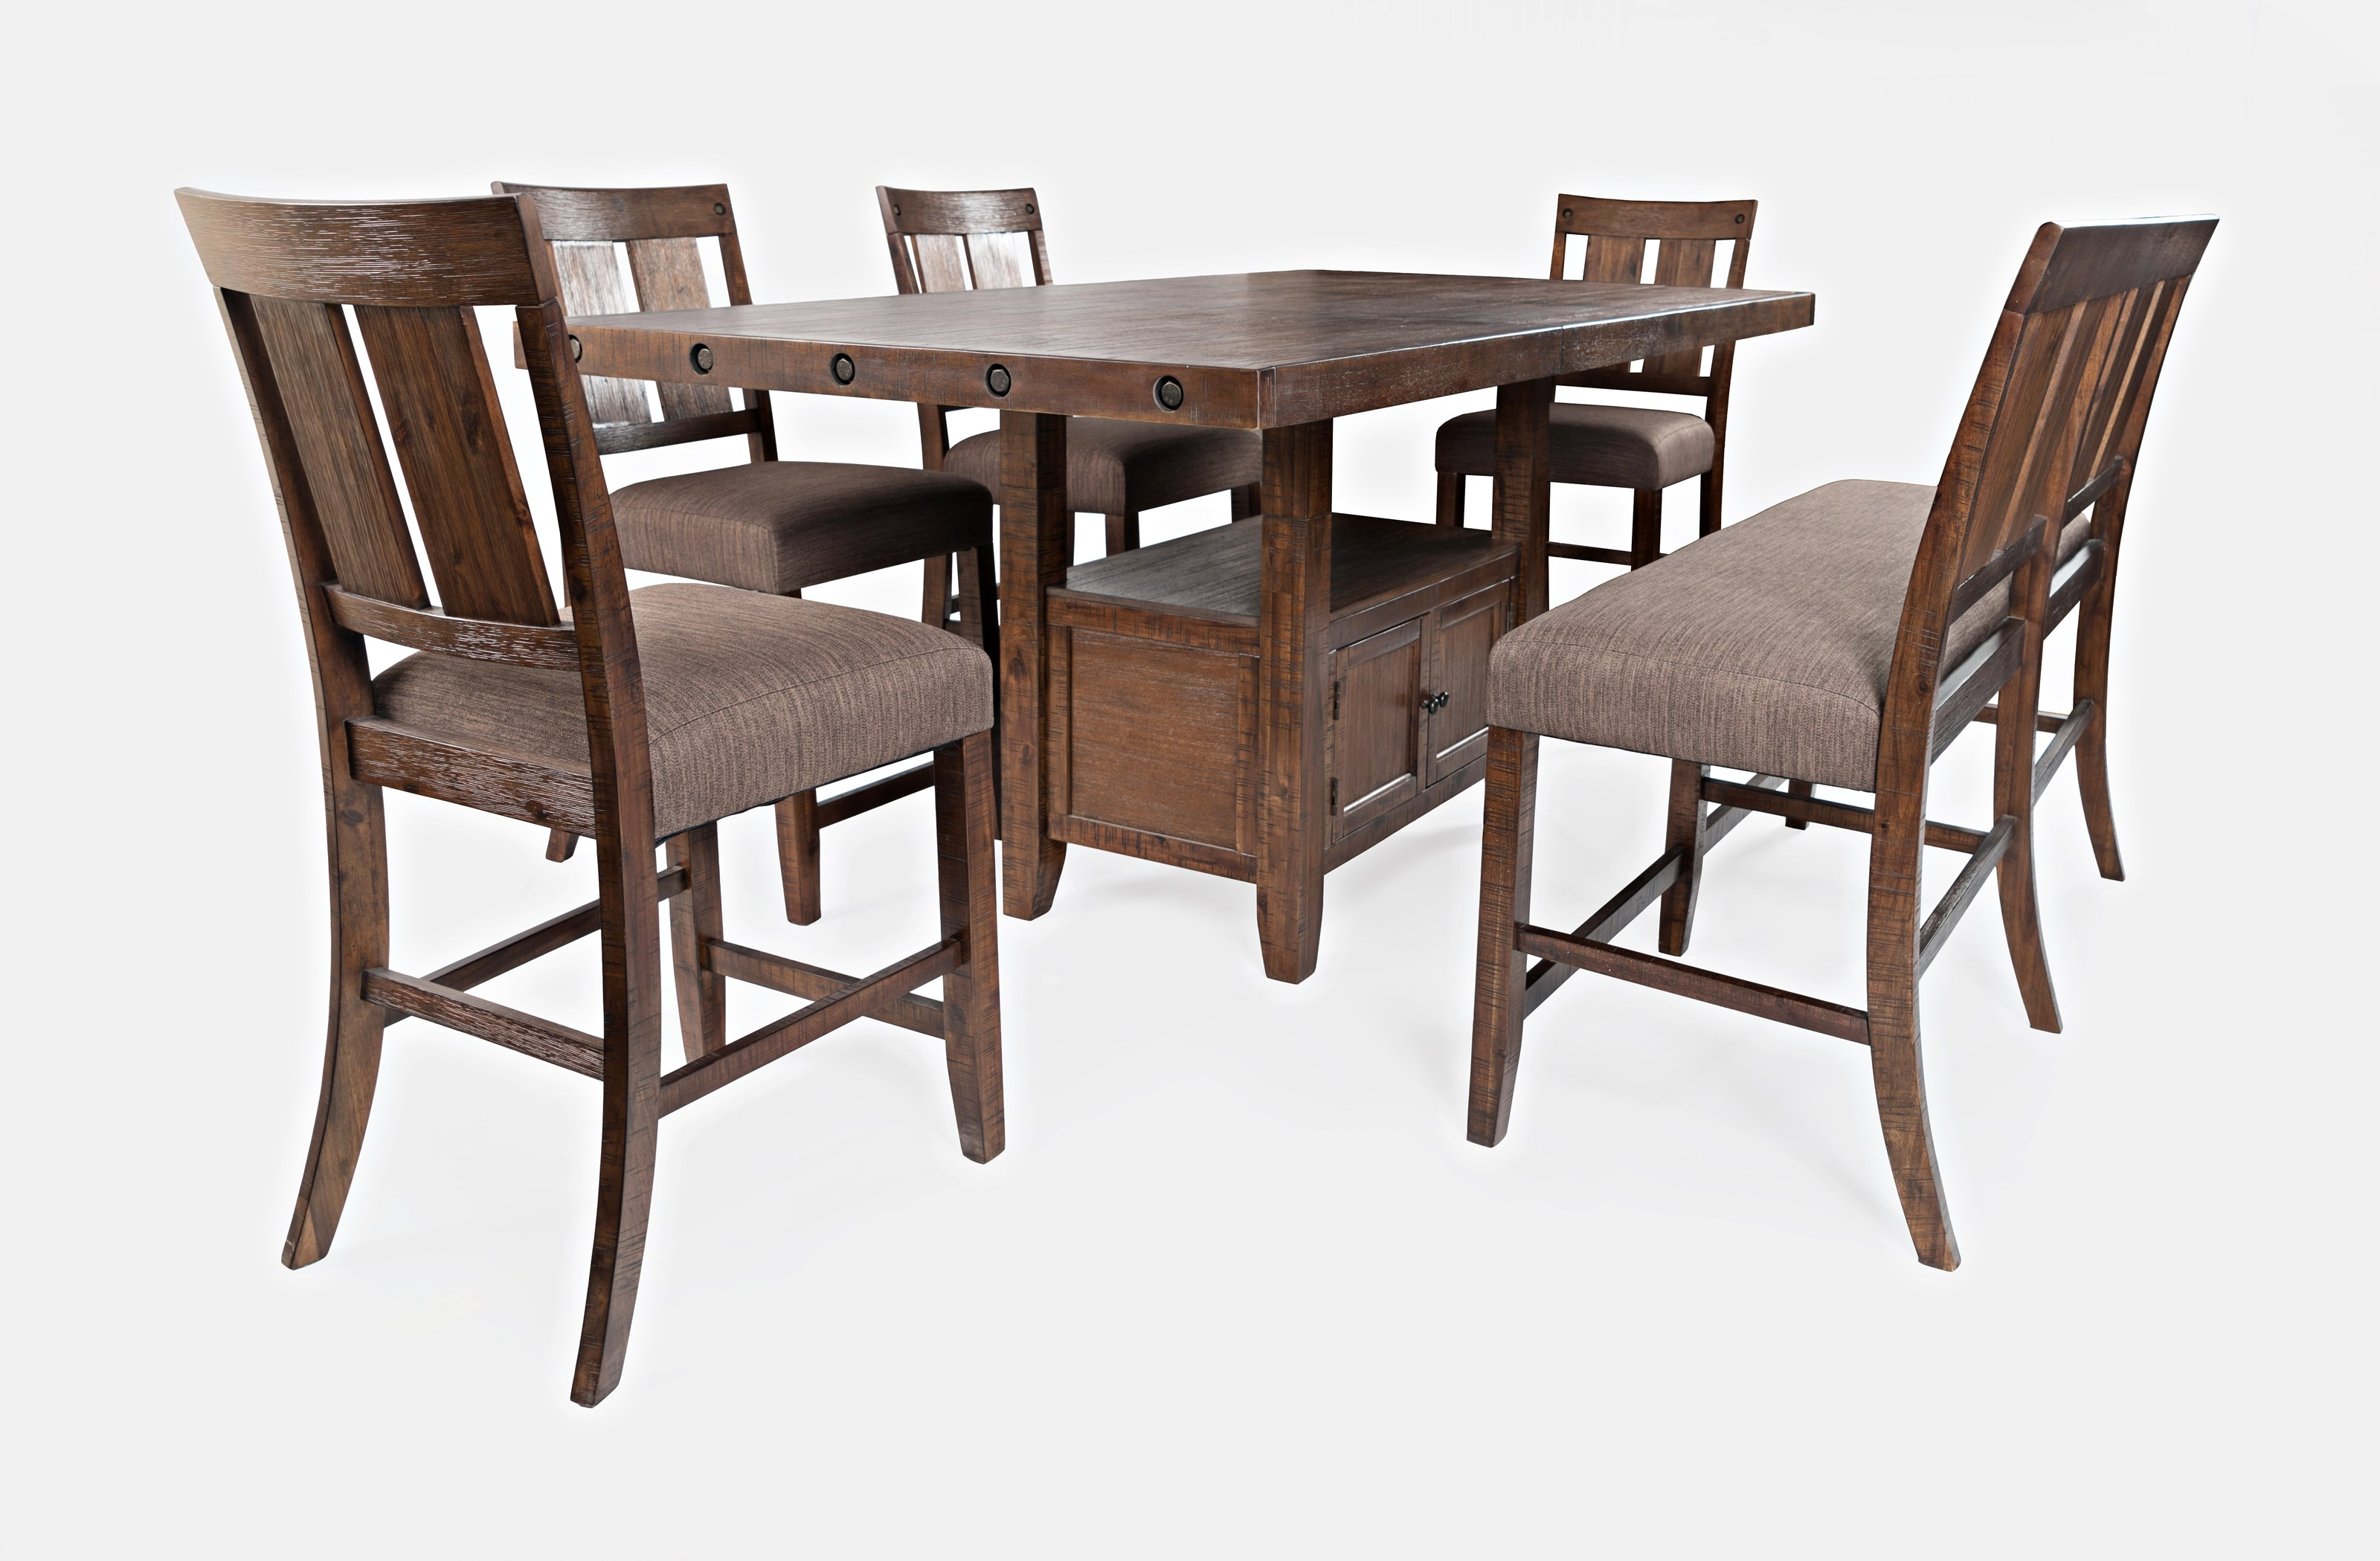 Mission Viejo Counter Height Table and Chair Set by Jofran at Jofran